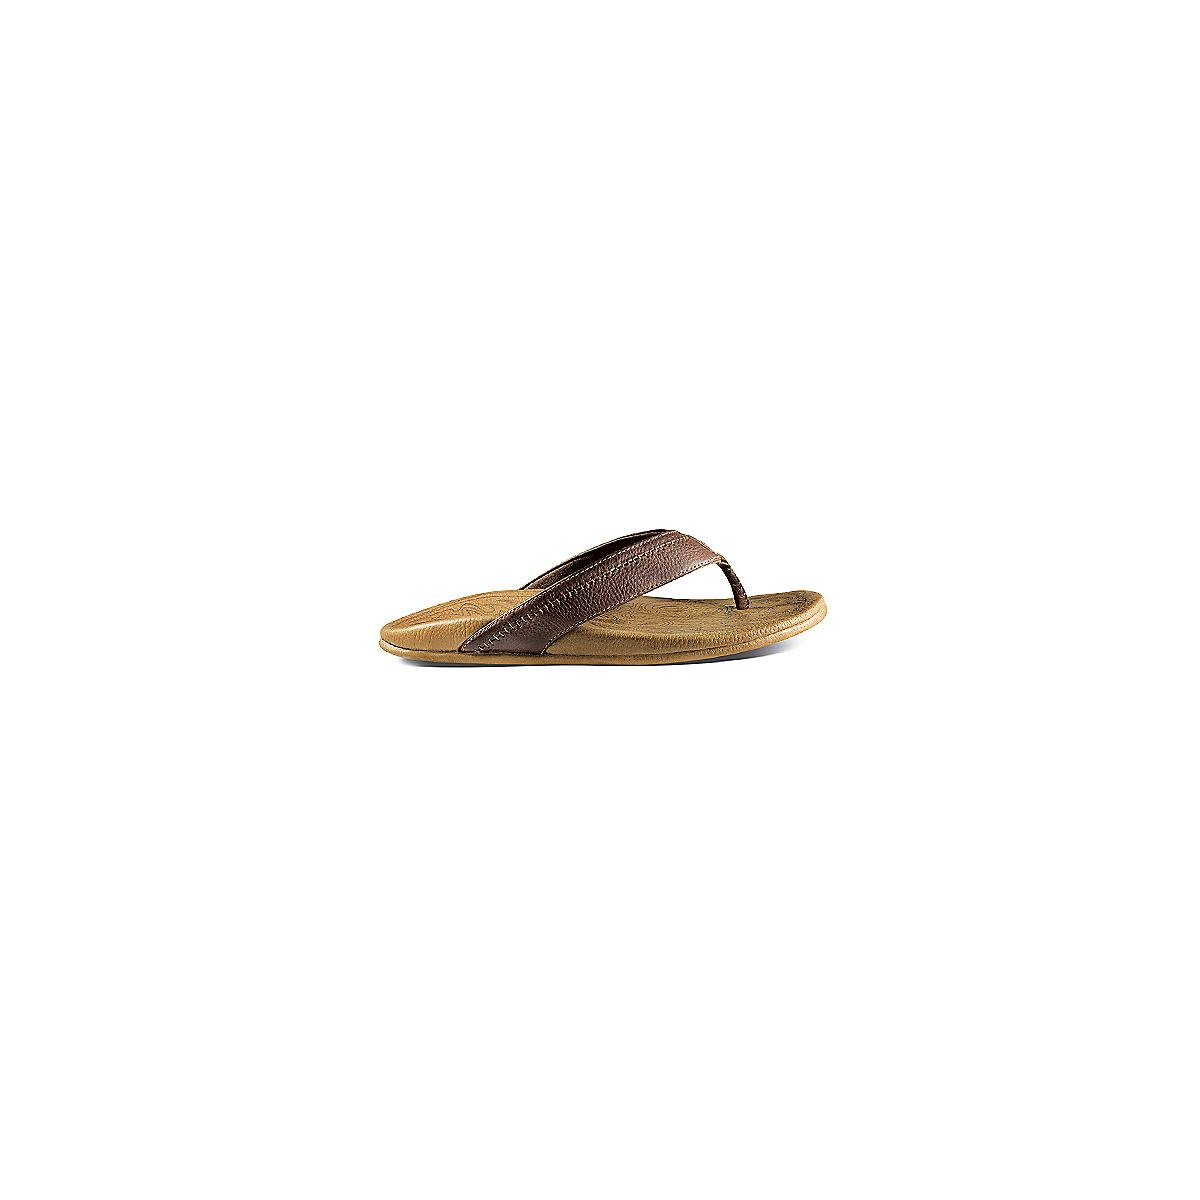 038793d19225 Mens OluKai Hiapo Sandals Shoe at Road Runner Sports